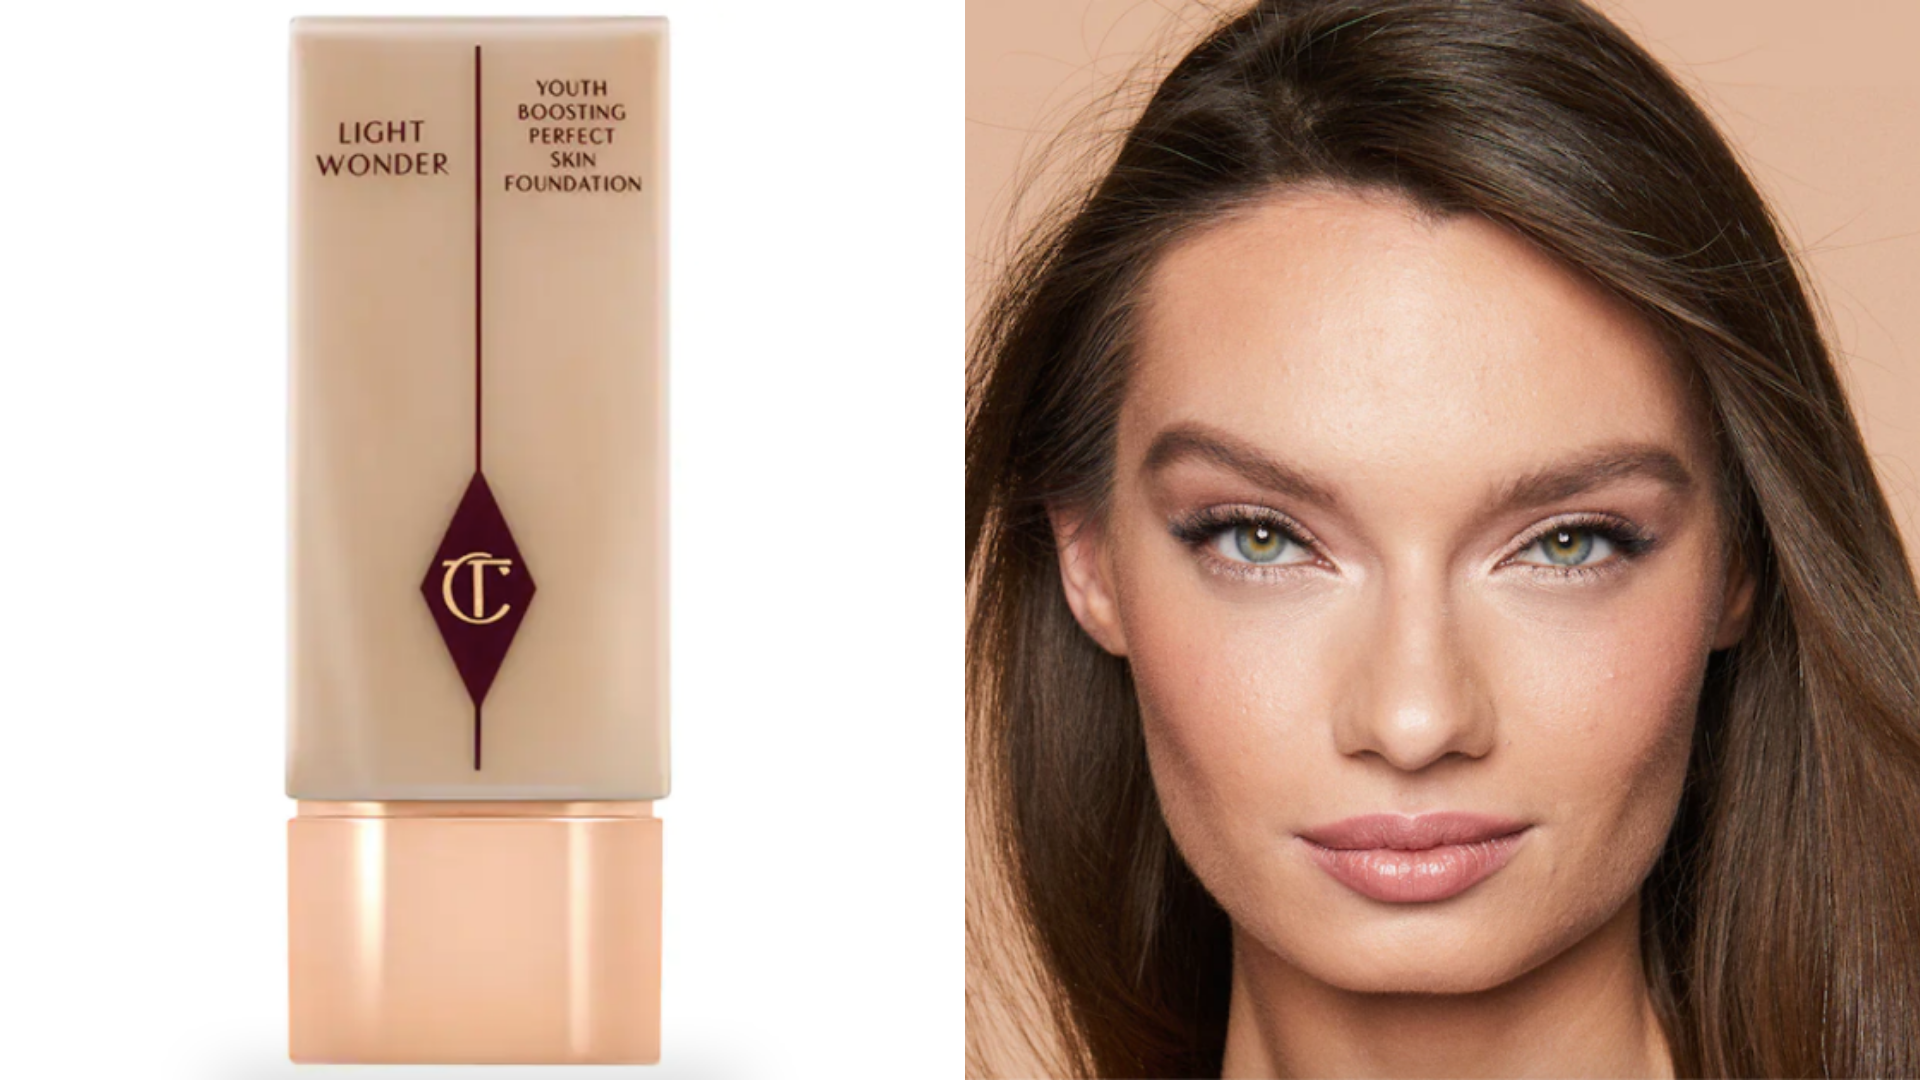 A bottle of foundation is next to a smiling woman.